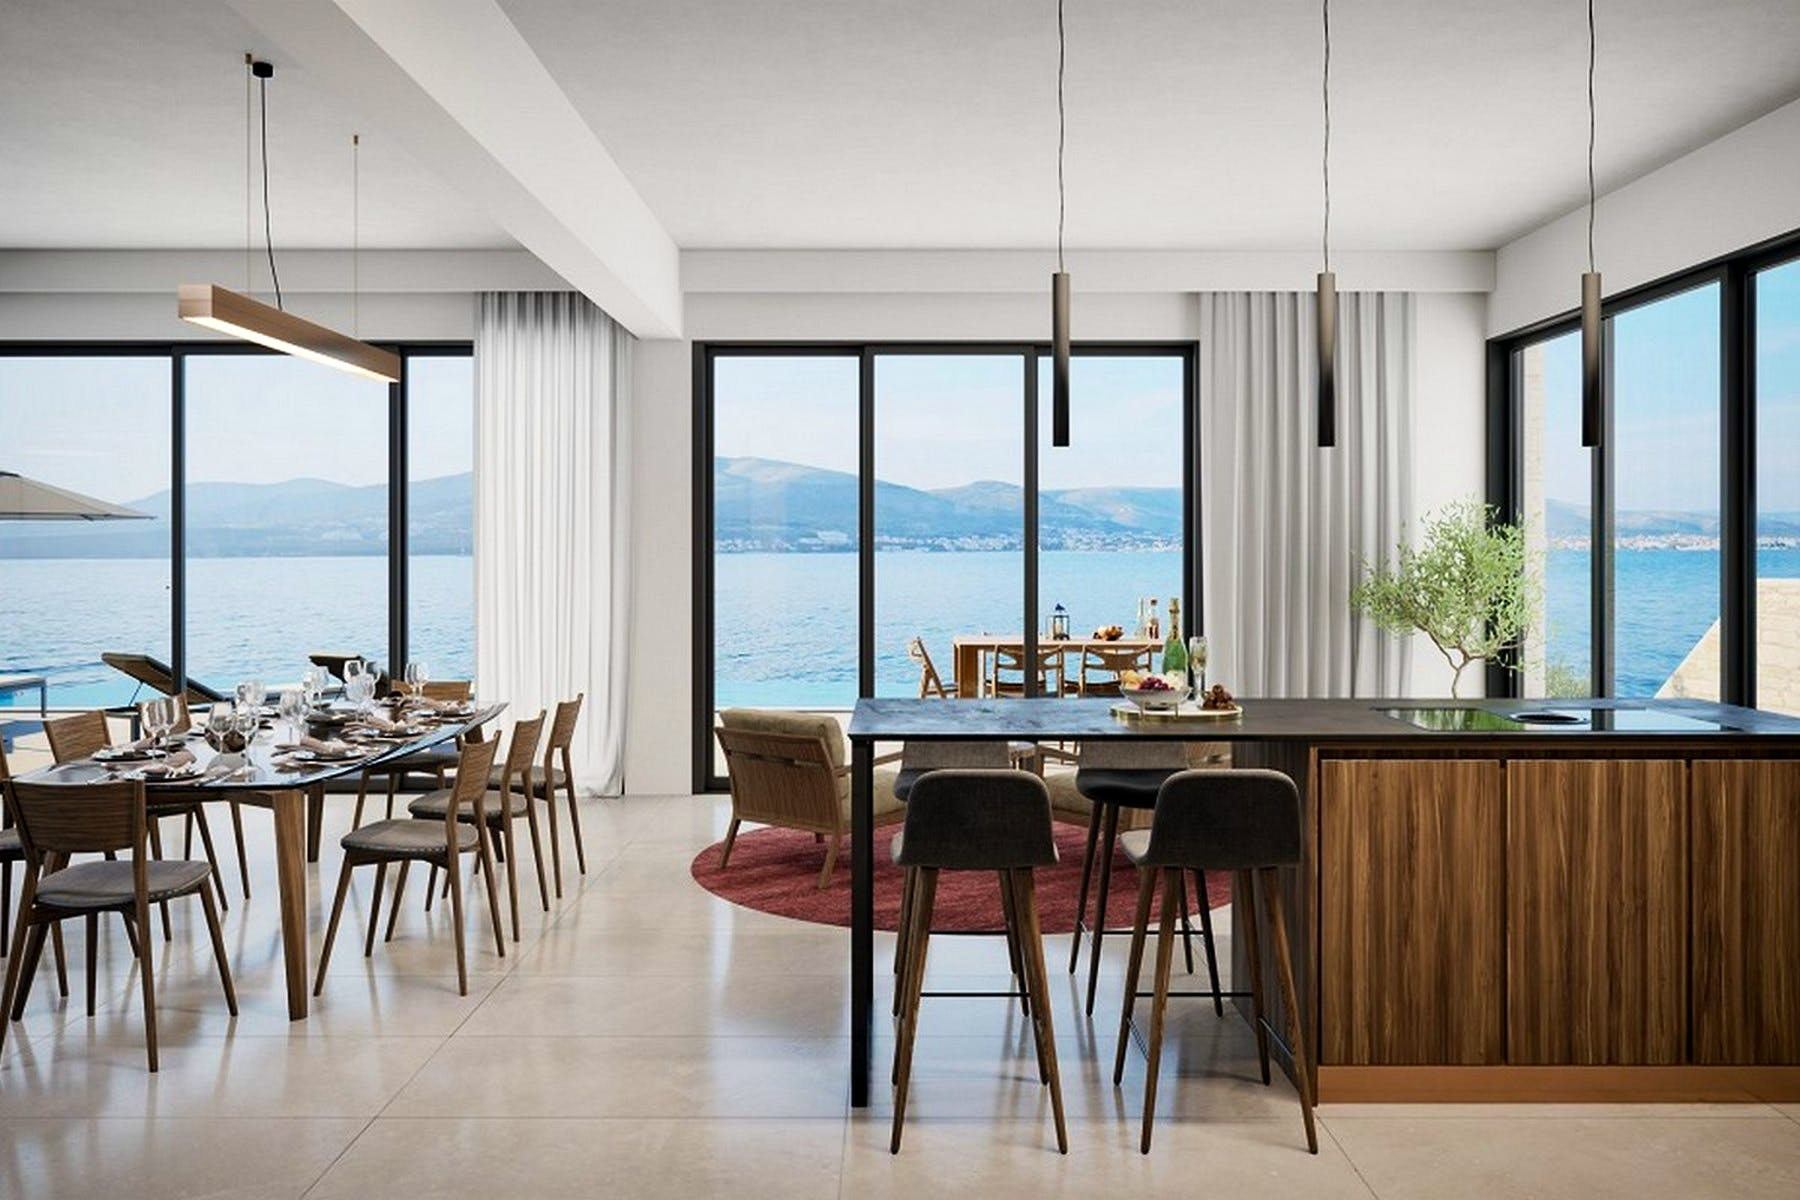 Kitchen and dining area with open sea view